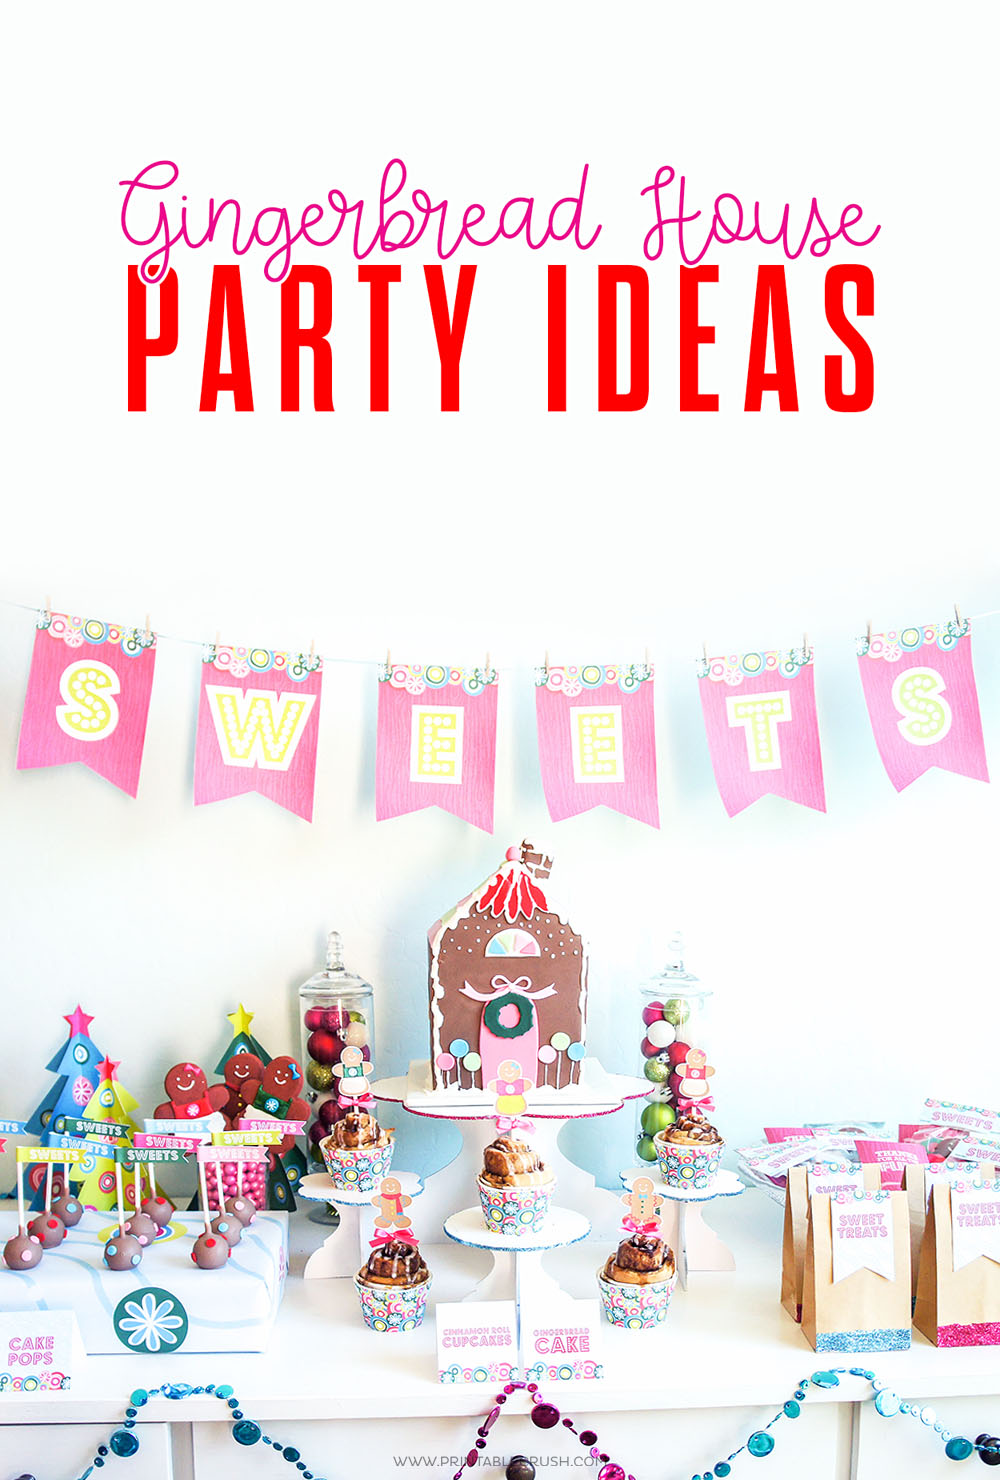 So many fun Holiday party ideas with this Gingerbread House Party!